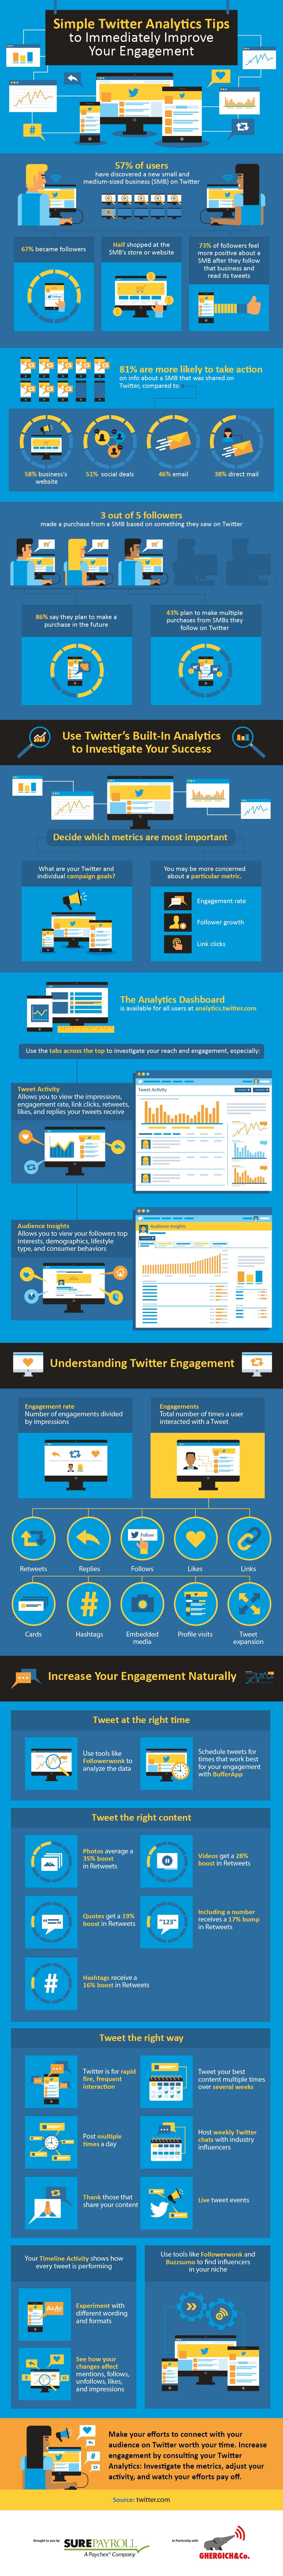 Use These Twitter Analytics Tips to Immediately Improve Your Engagement